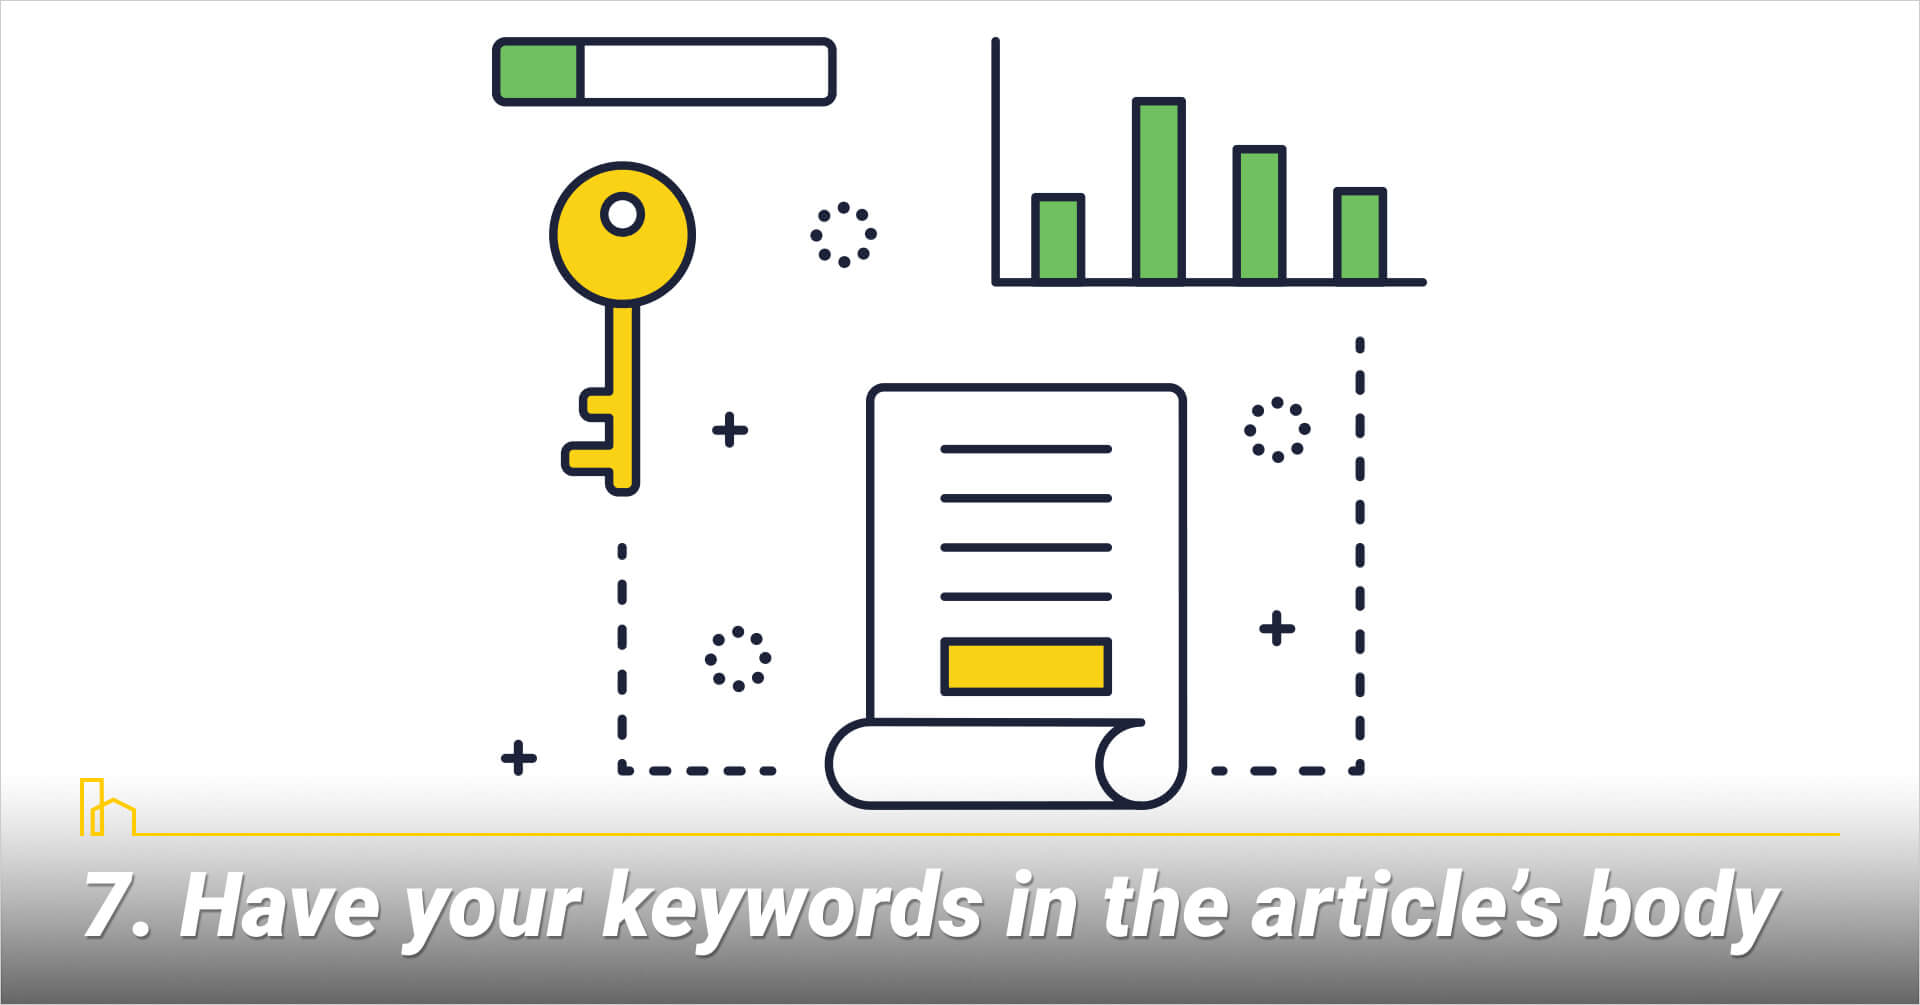 Have your keywords in the article's body